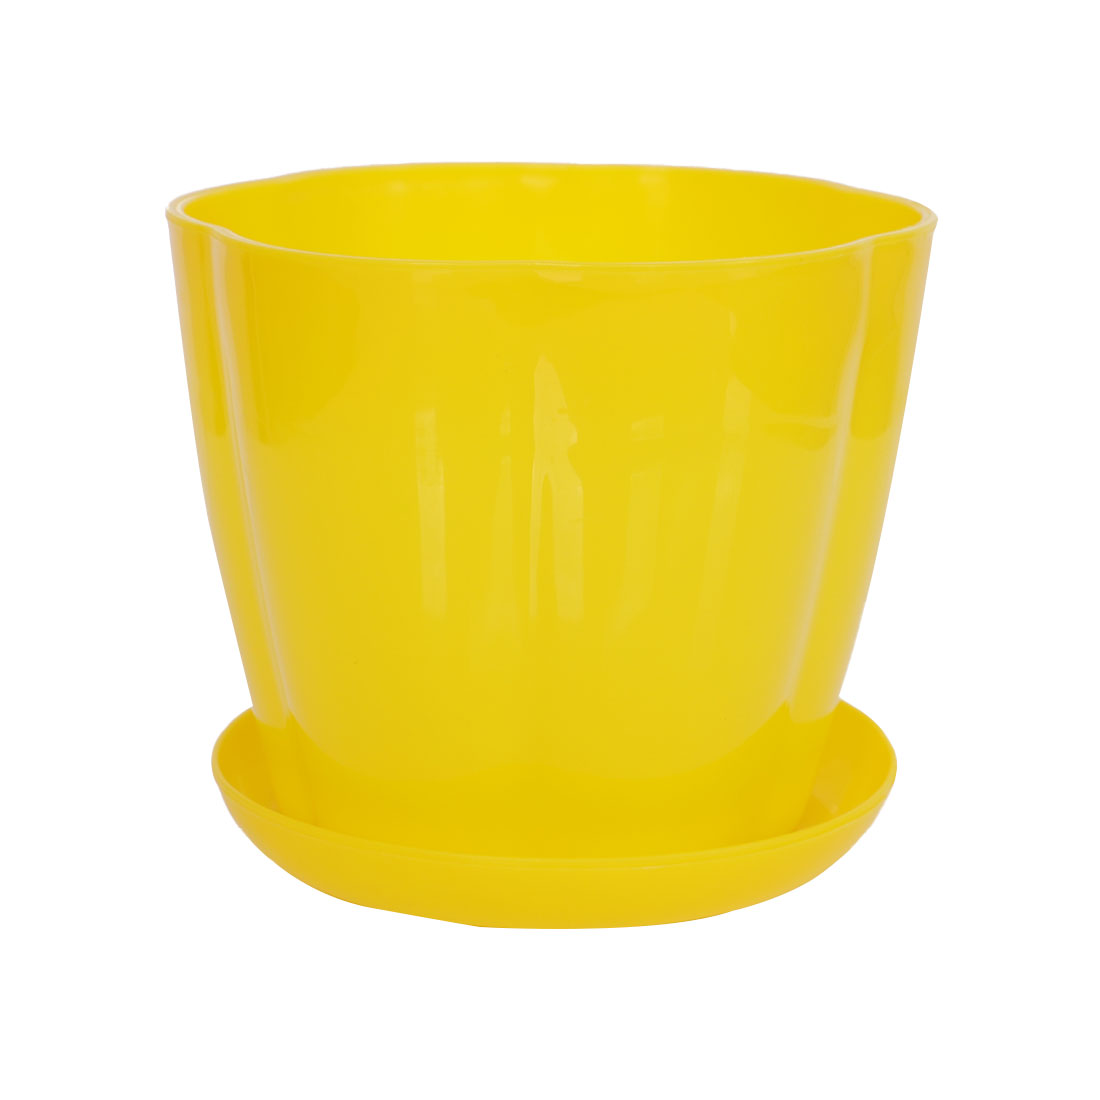 Home Garden Plastic Petal Shaped Plant Planter Holder Flower Pot Yellow w Tray